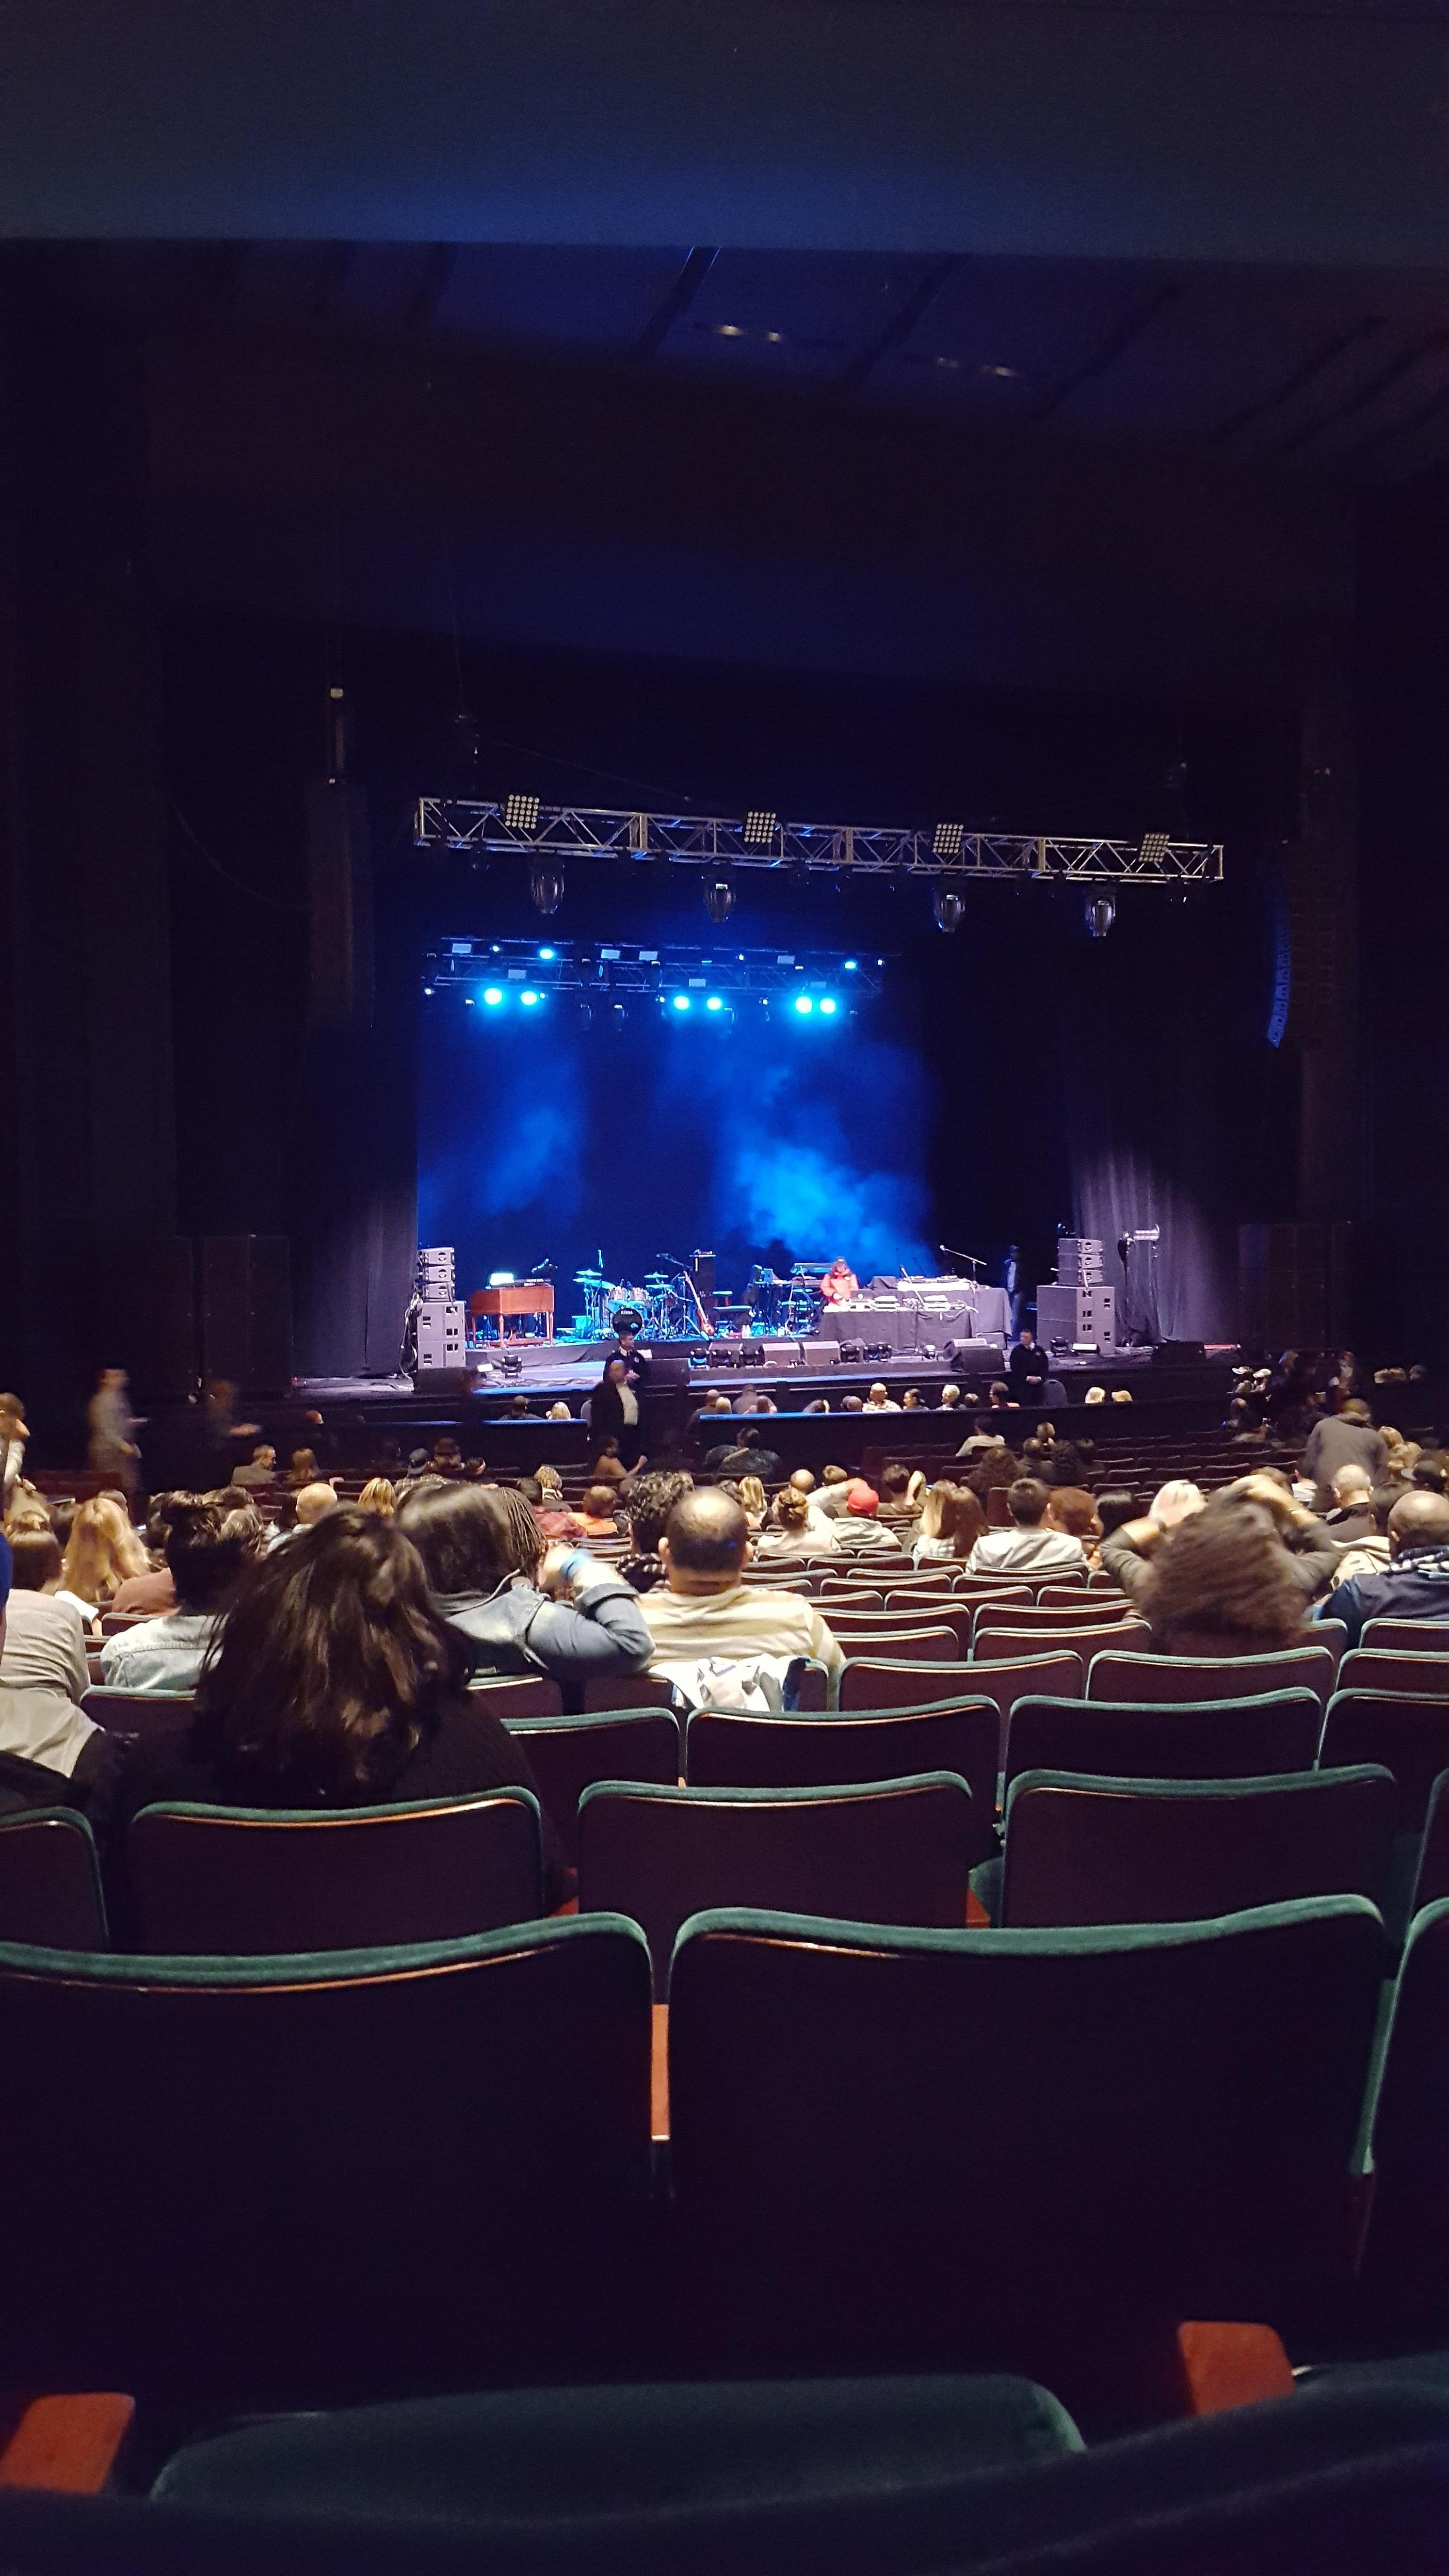 McCaw Hall Section Orchestra 3 Row Z Seat 12